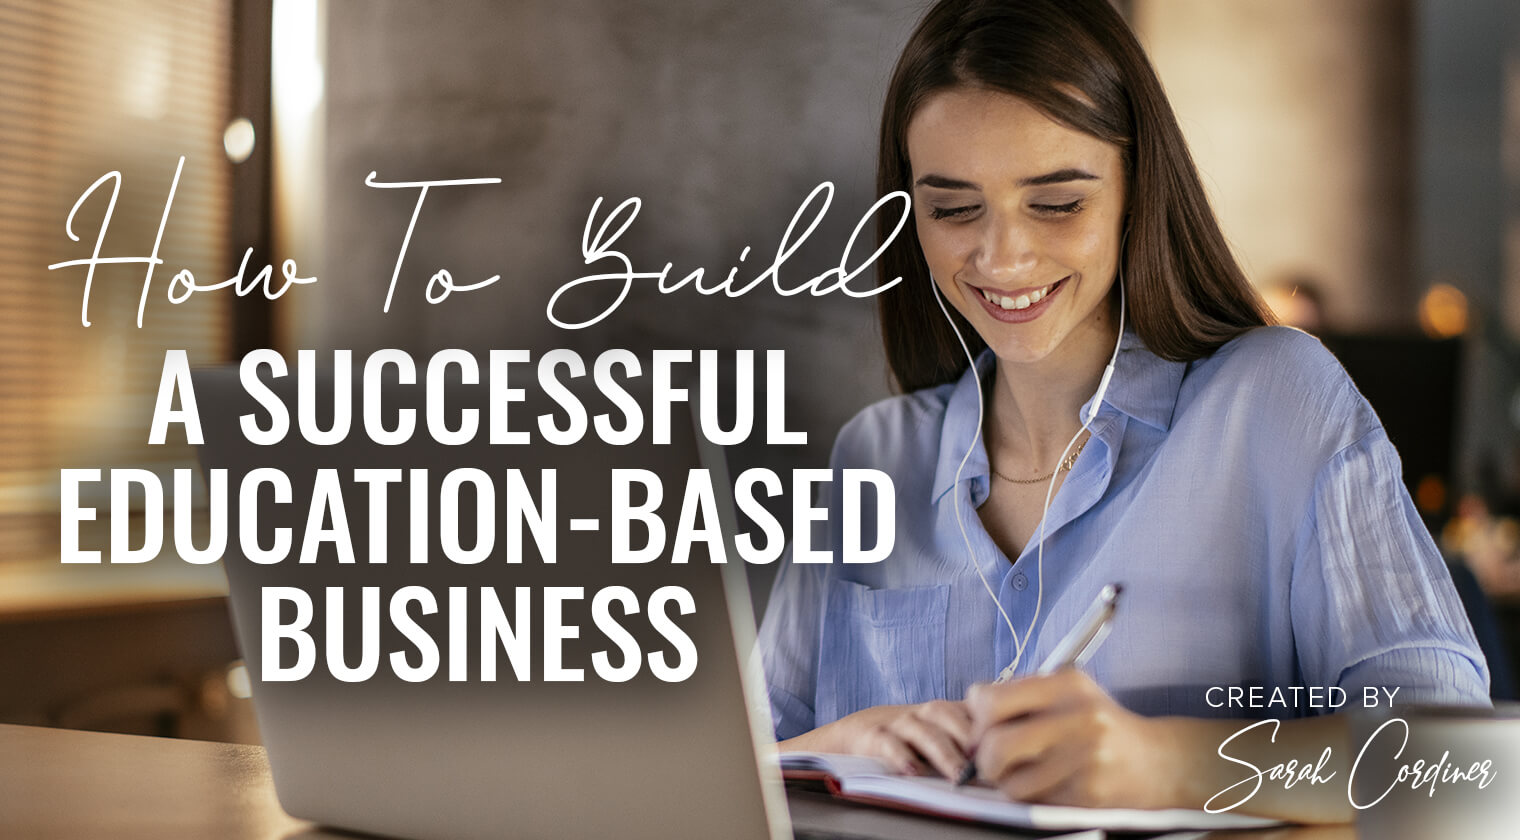 build a successful education-based business